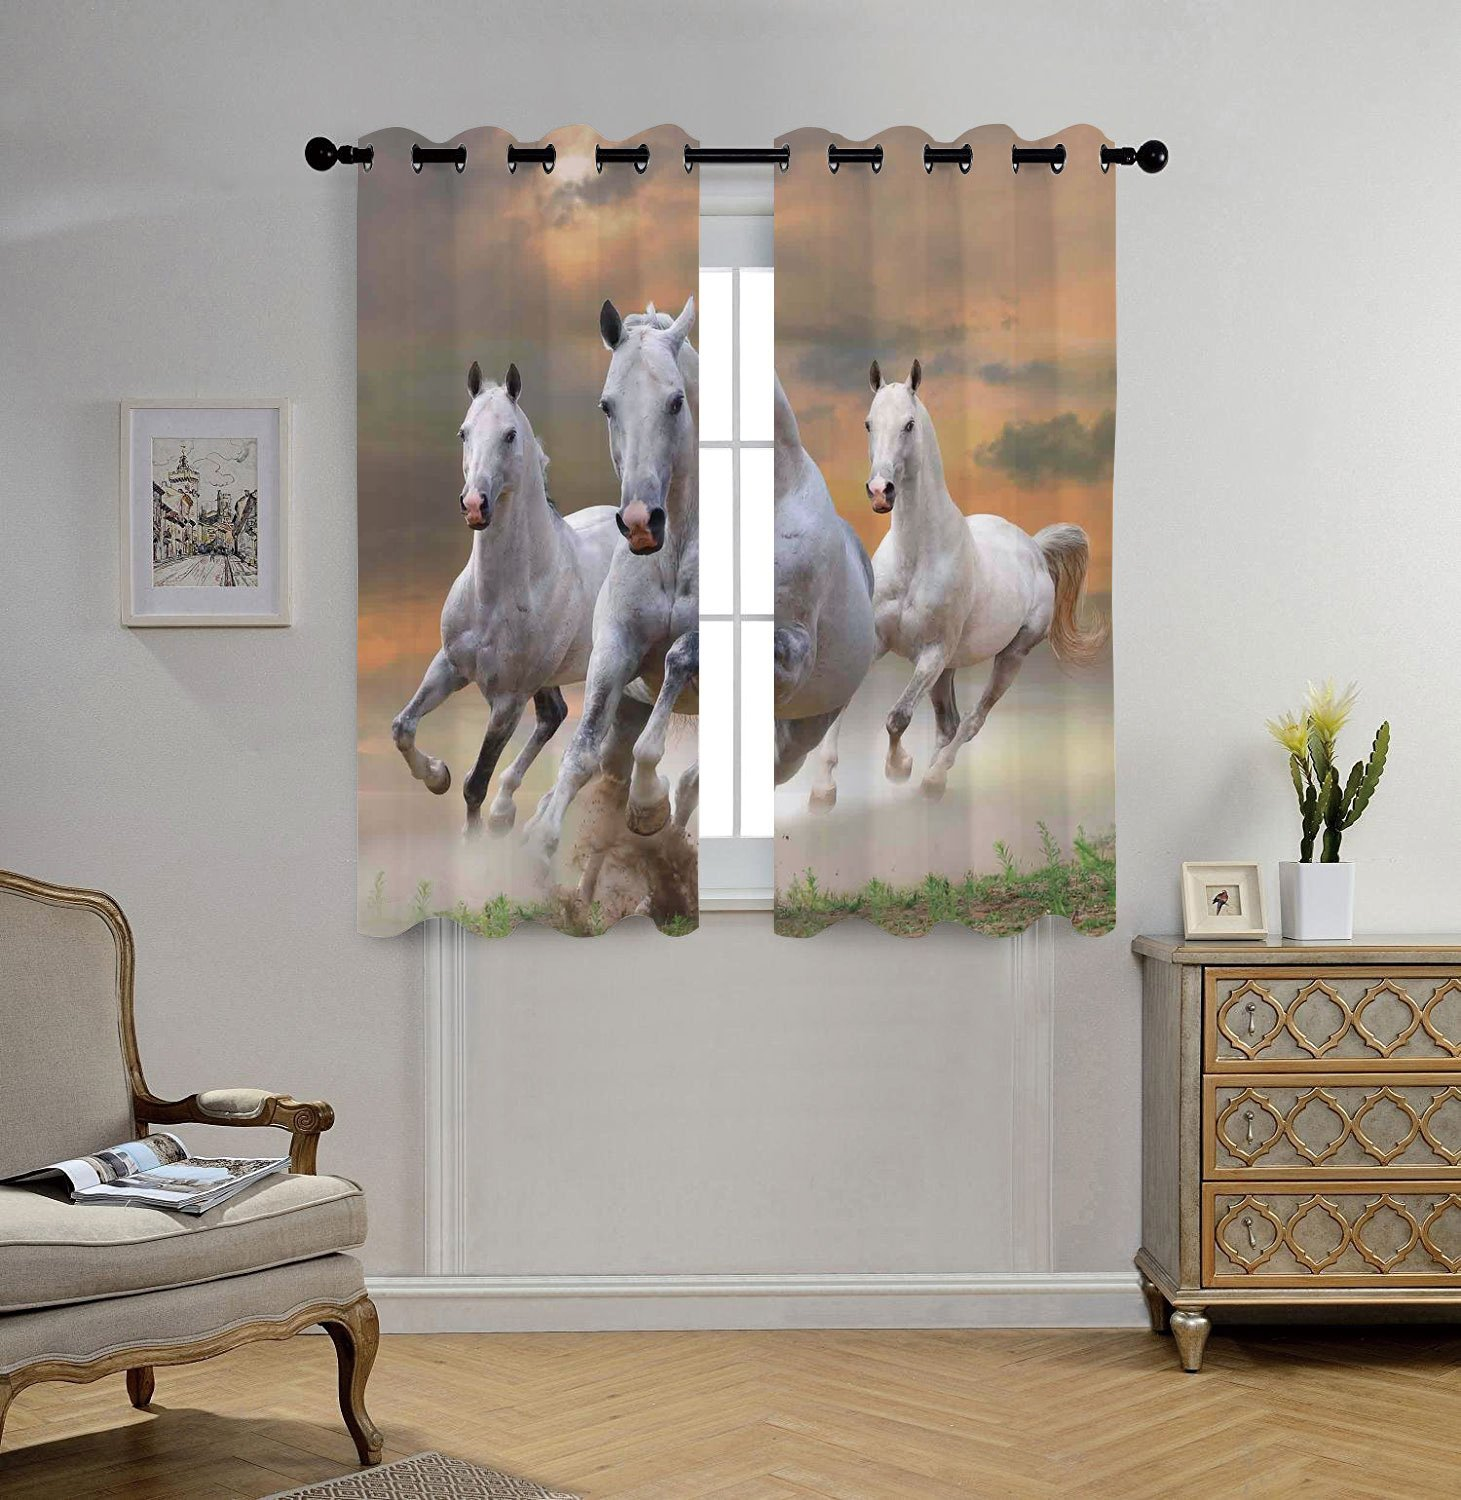 Stylish Window Curtains,Animal Decor,Stallion Horses Running on a Mystical Sky Background Equestrian Male Champions Print,White Orange,2 Panel Set Window Drapes,for Living Room Bedroom Kitchen Cafe by iPrint (Image #1)